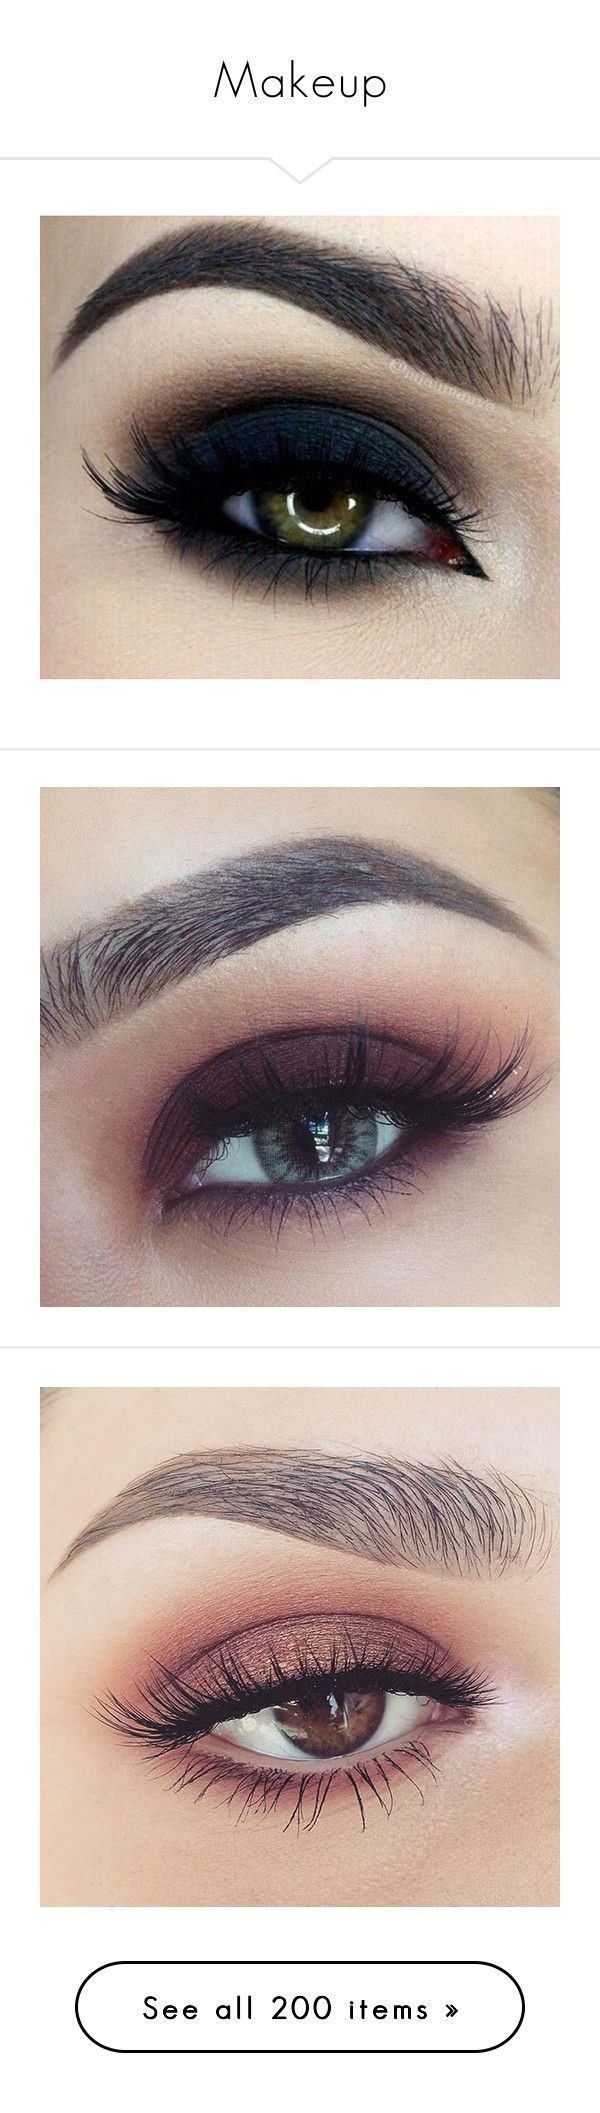 """""""Makeup"""" by fashionista5591 ❤️ liked on Polyvore featuring pictures, beauty products, makeup, eye makeup, eyes, eyeliner, beauty, make, filler and liquid eye-liner"""